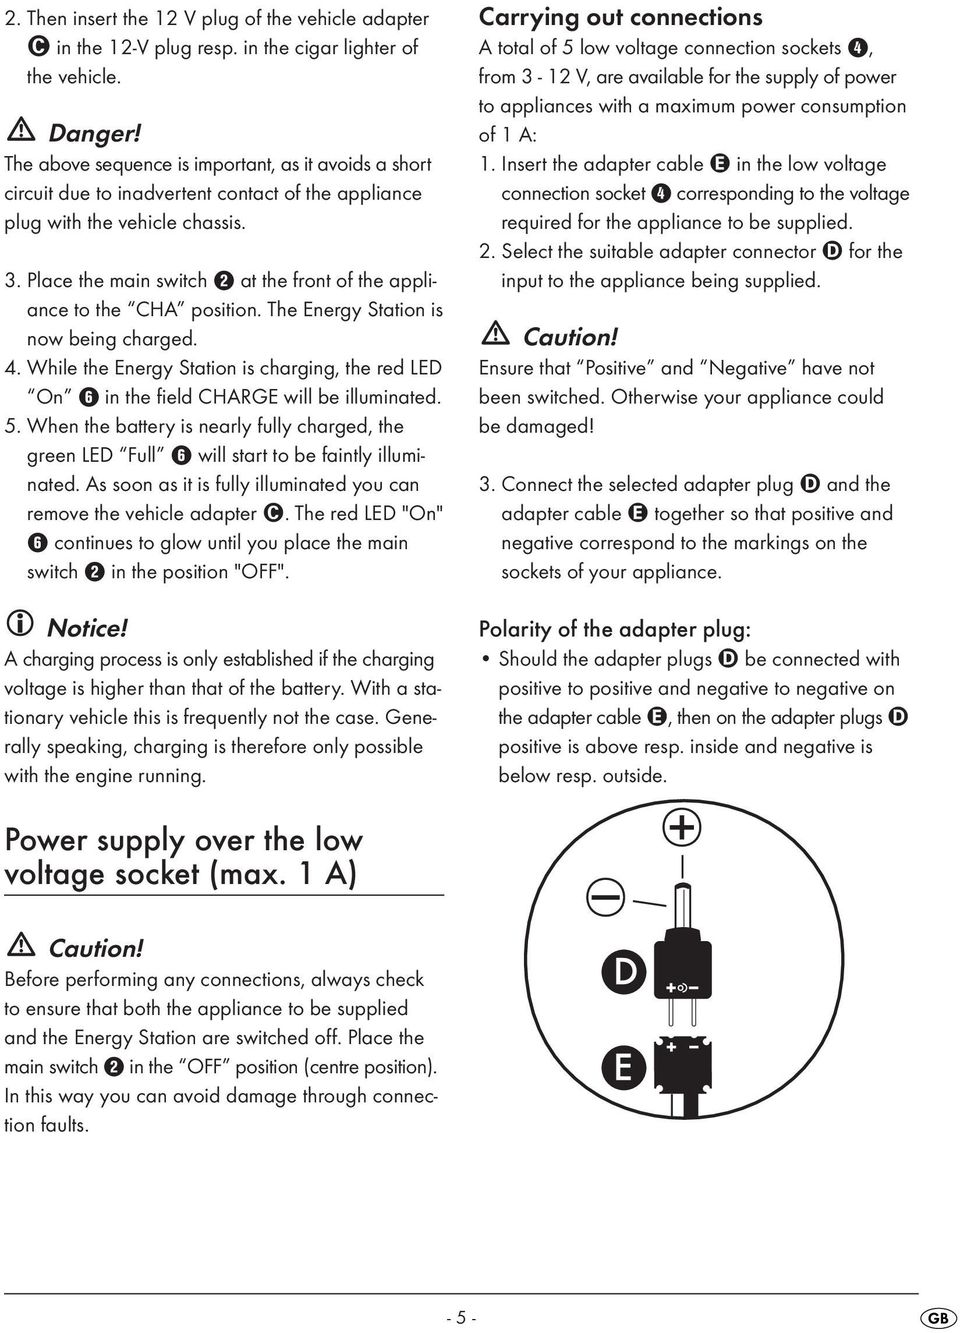 Mobile Power Supply Kh Pdf Brief Introduction To Circuits Electricaleasycom Place The Main Switch 2 At Front Of Appliance Cha Position